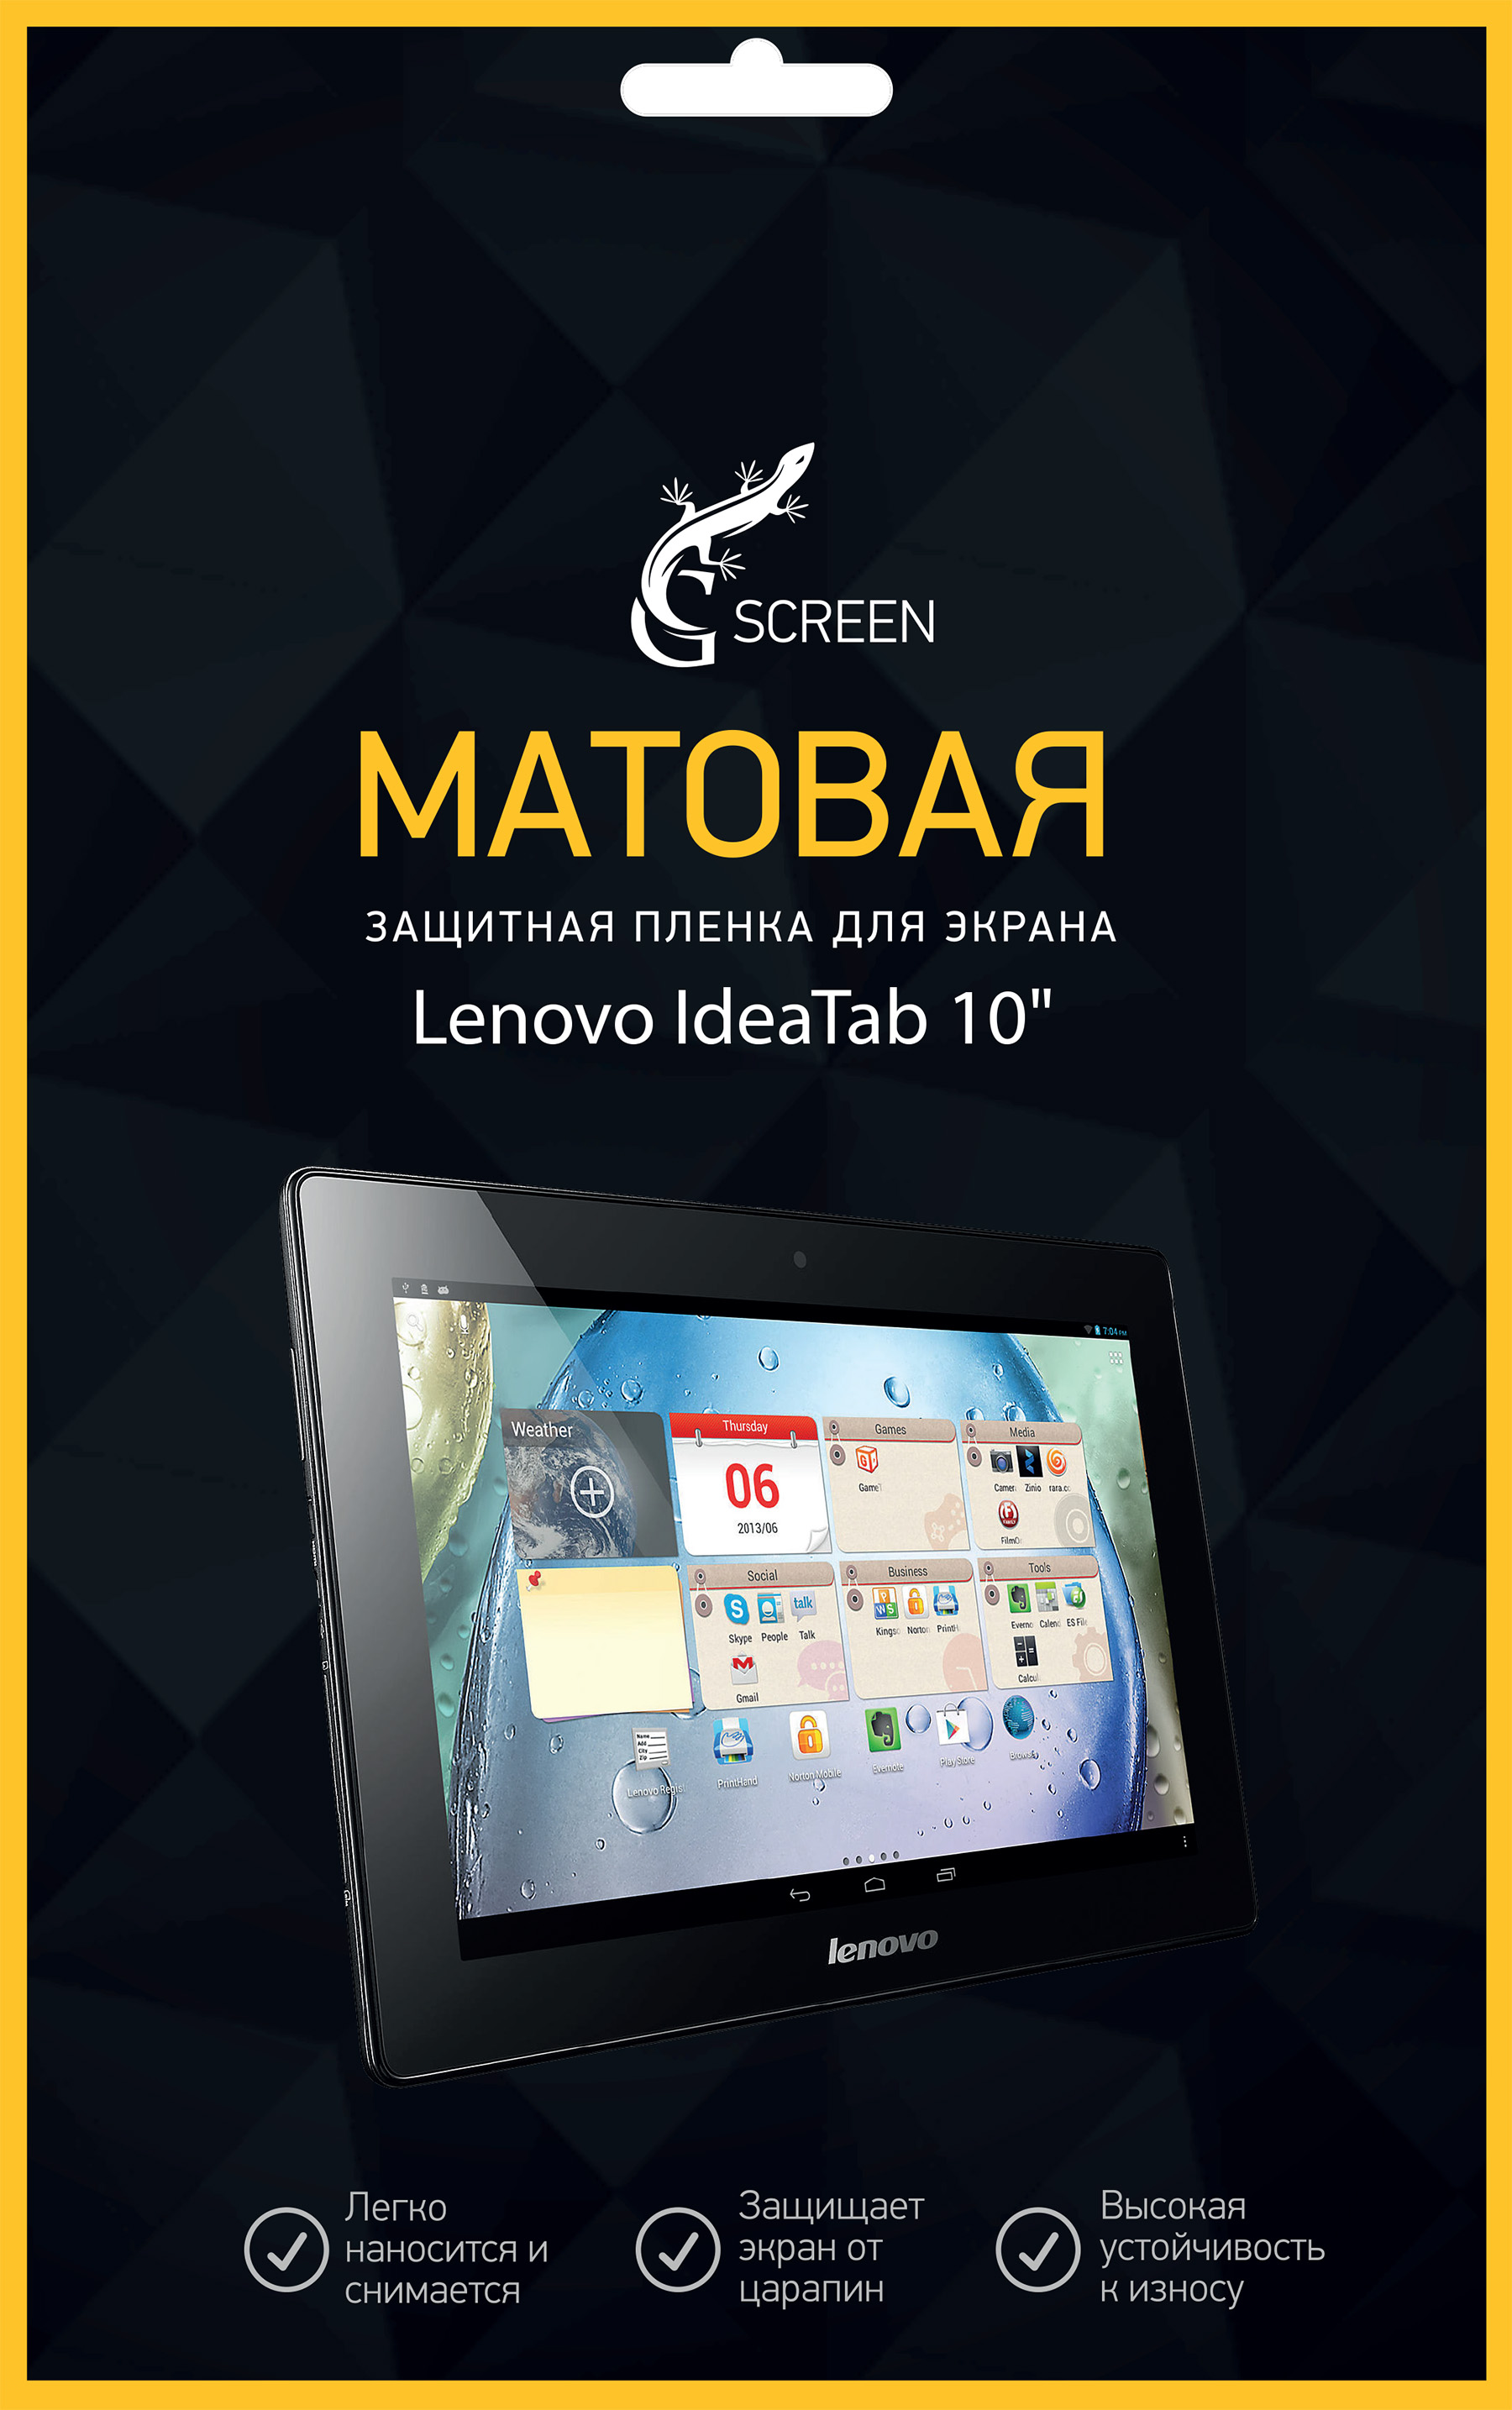 �������� ������ G-Screen ��� Lenovo IdeaTab A7600 (�10-70) �������